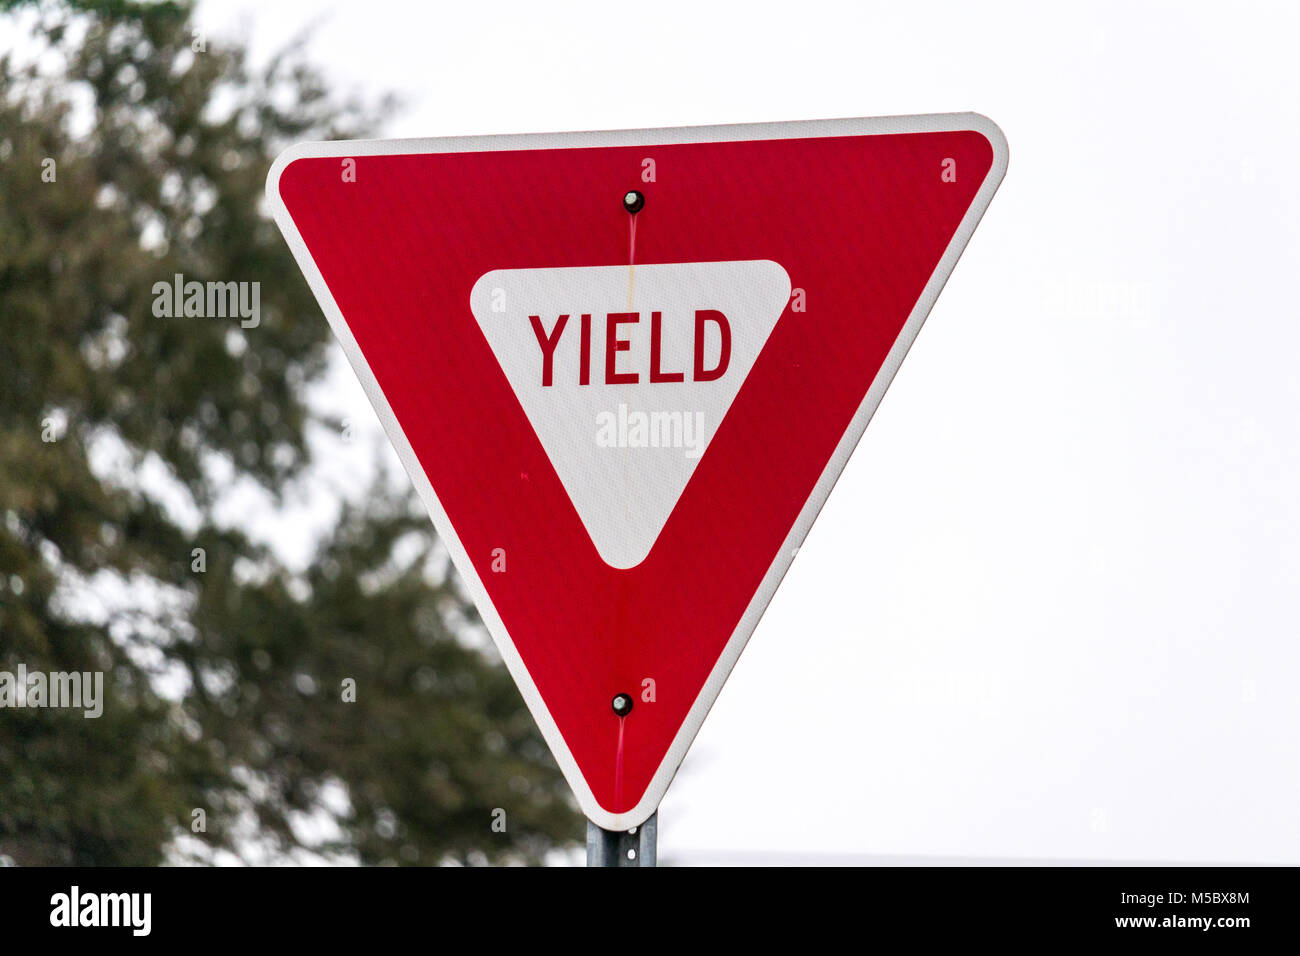 A yield sign - Stock Image